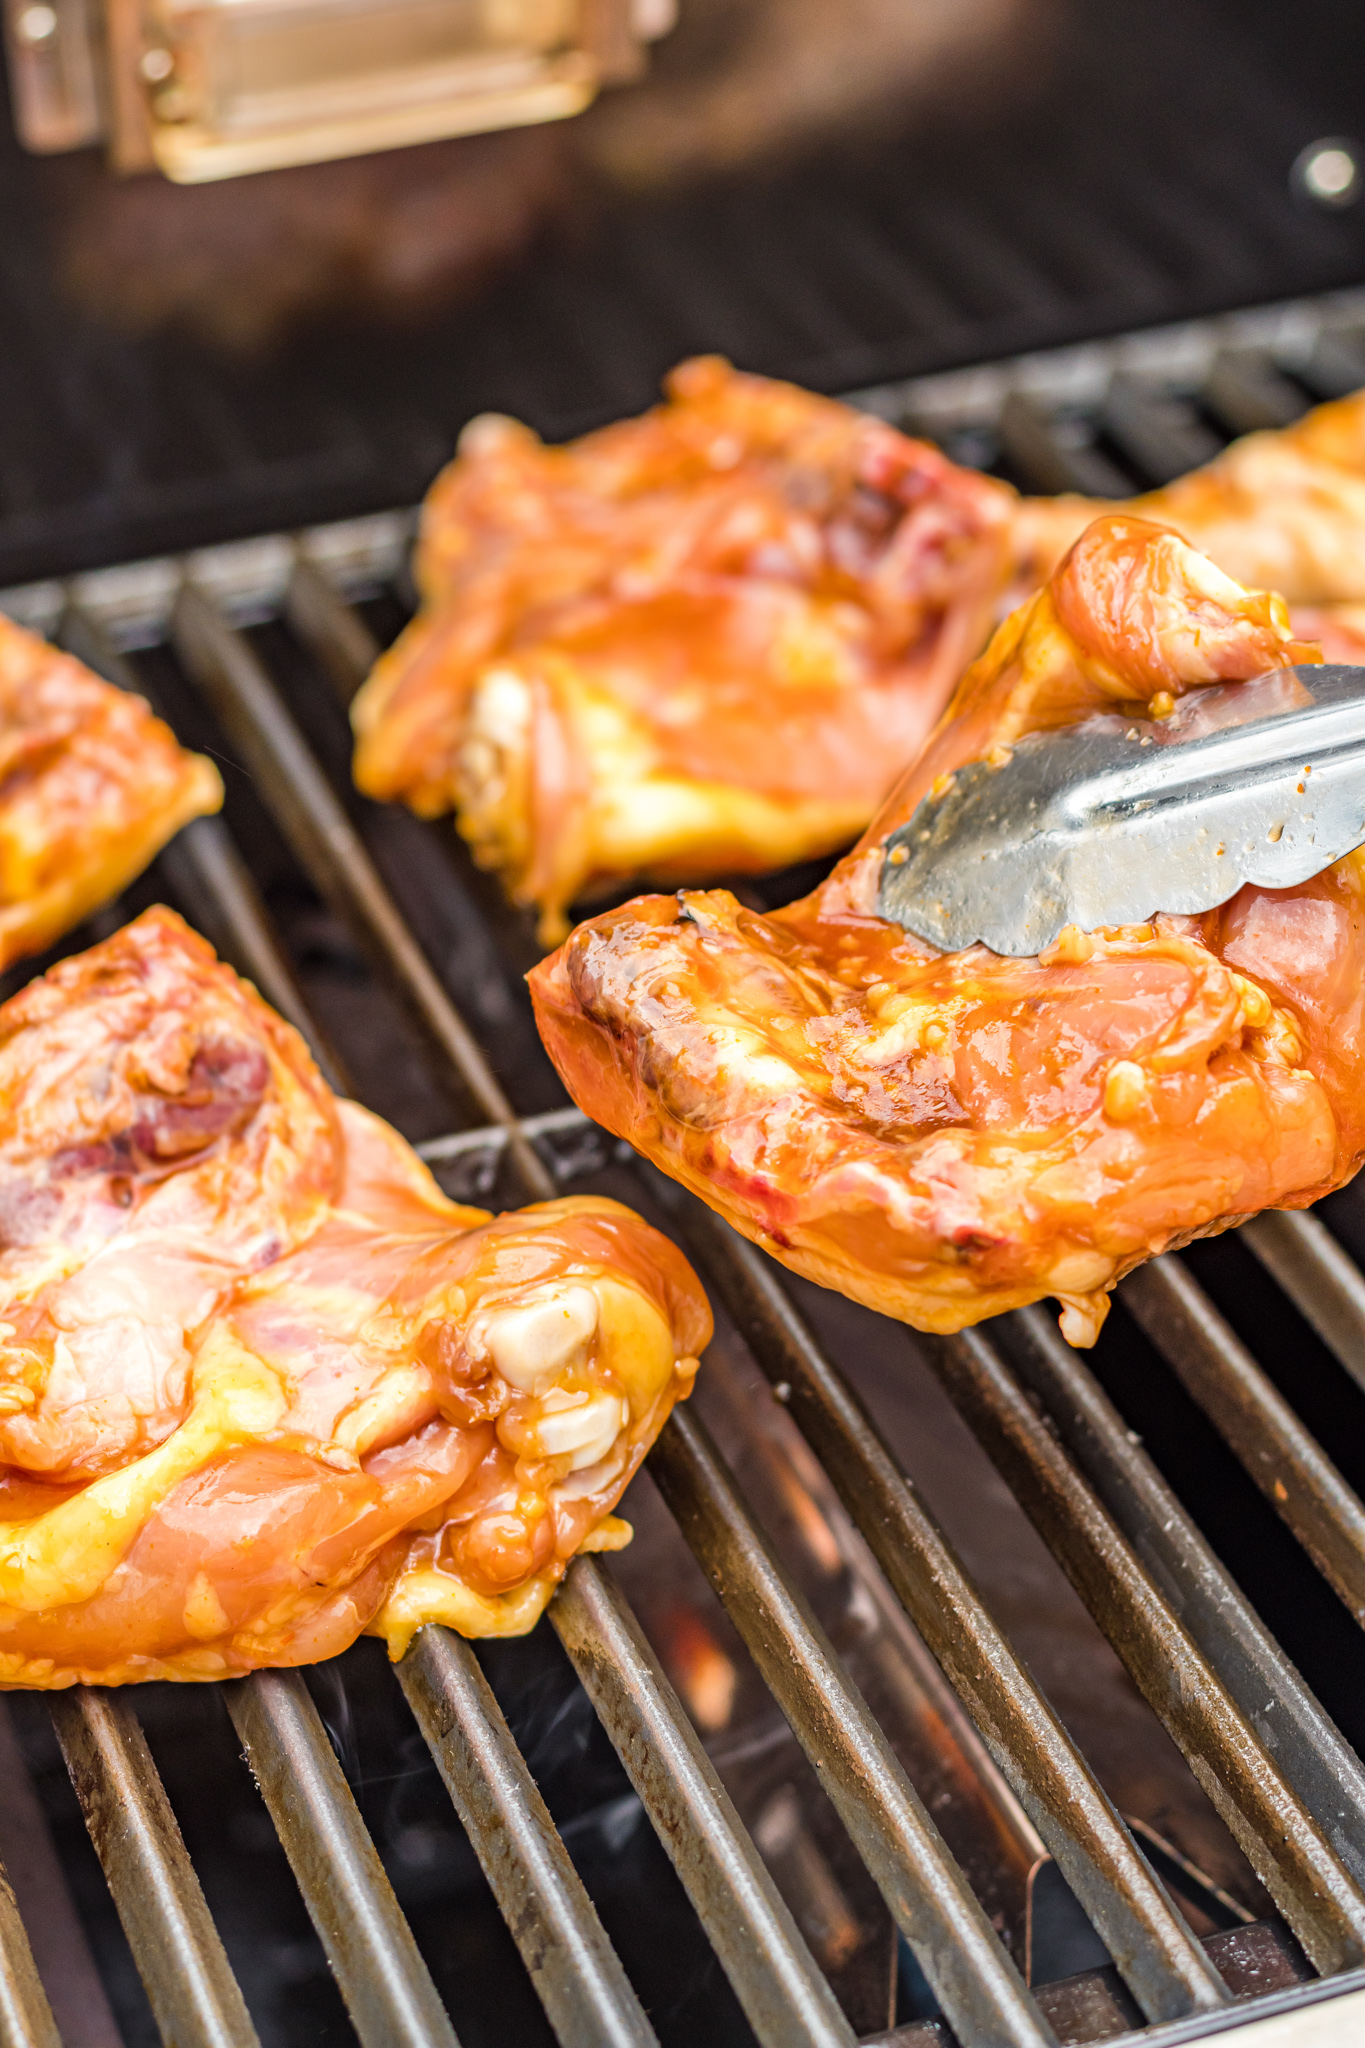 Grilled Huli Huli Chicken on the grill.